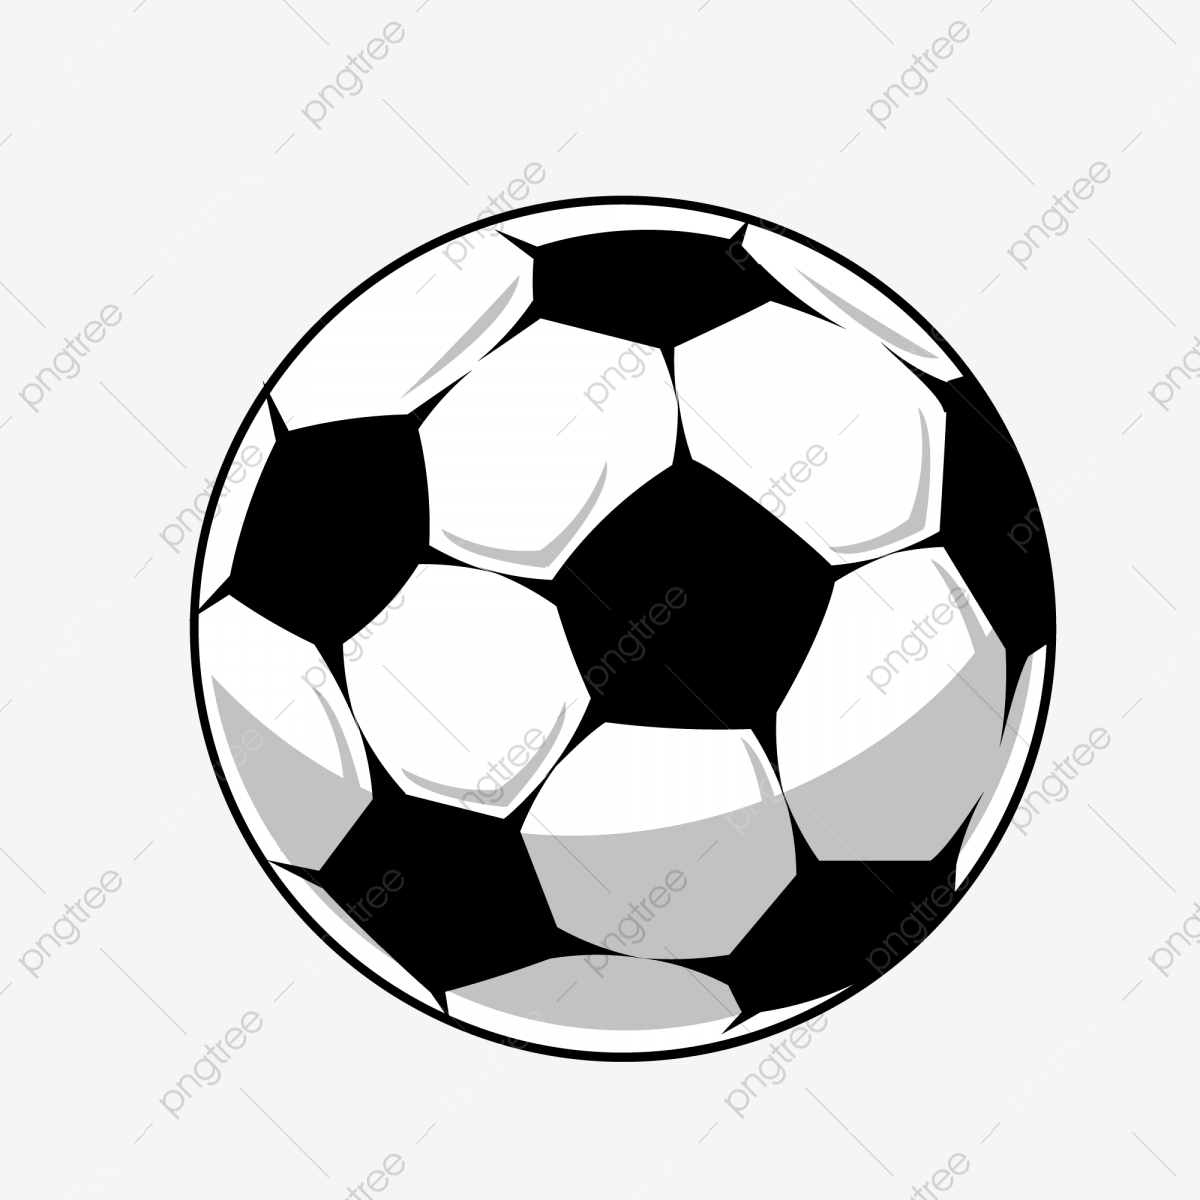 Origami Soccer Ball – How to Make Paper Soccer Ball Step by Step ... | 1200x1200